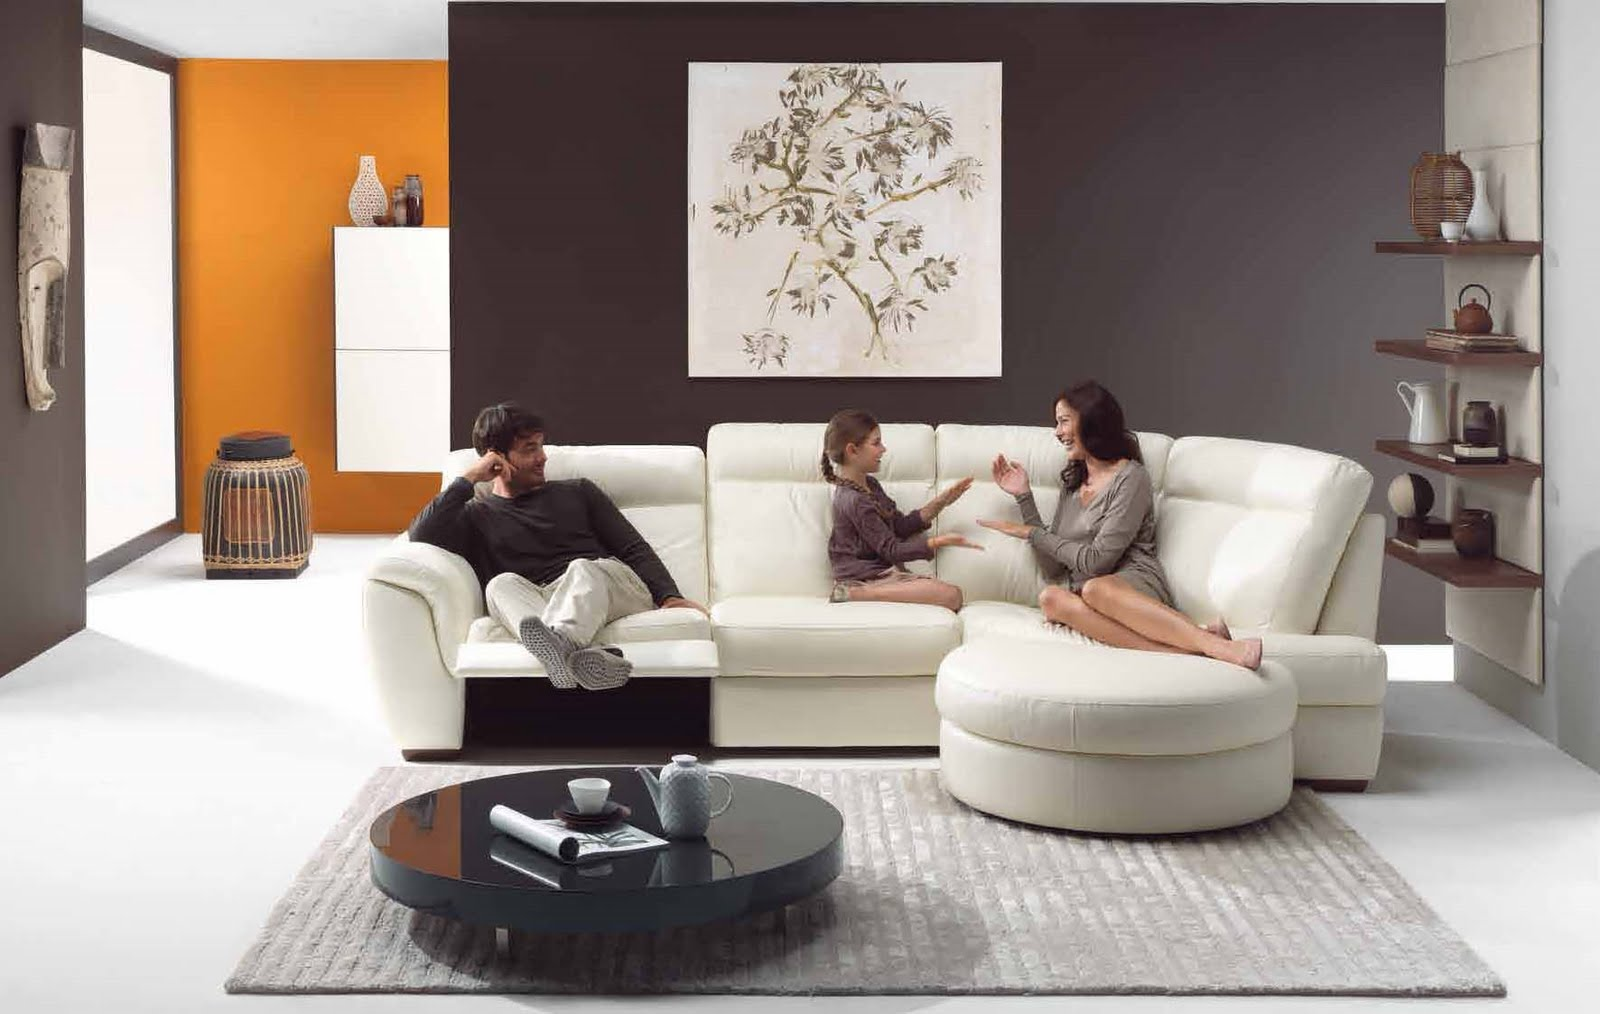 Future House Design: Modern Living Room Interior Design Styles 2010 By  Natuzzi